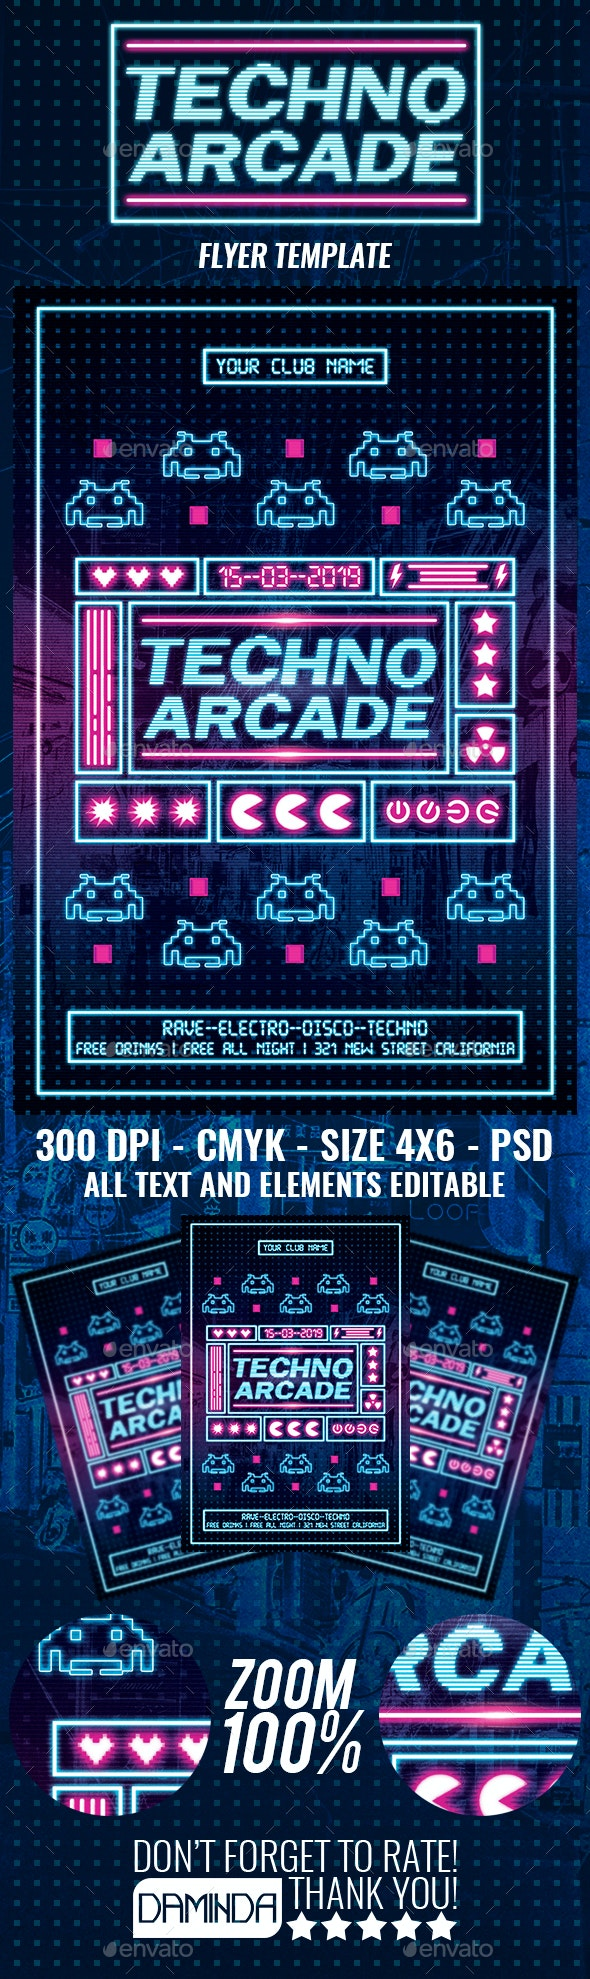 Techno Arcade New 4 Flyer Template - Clubs & Parties Events